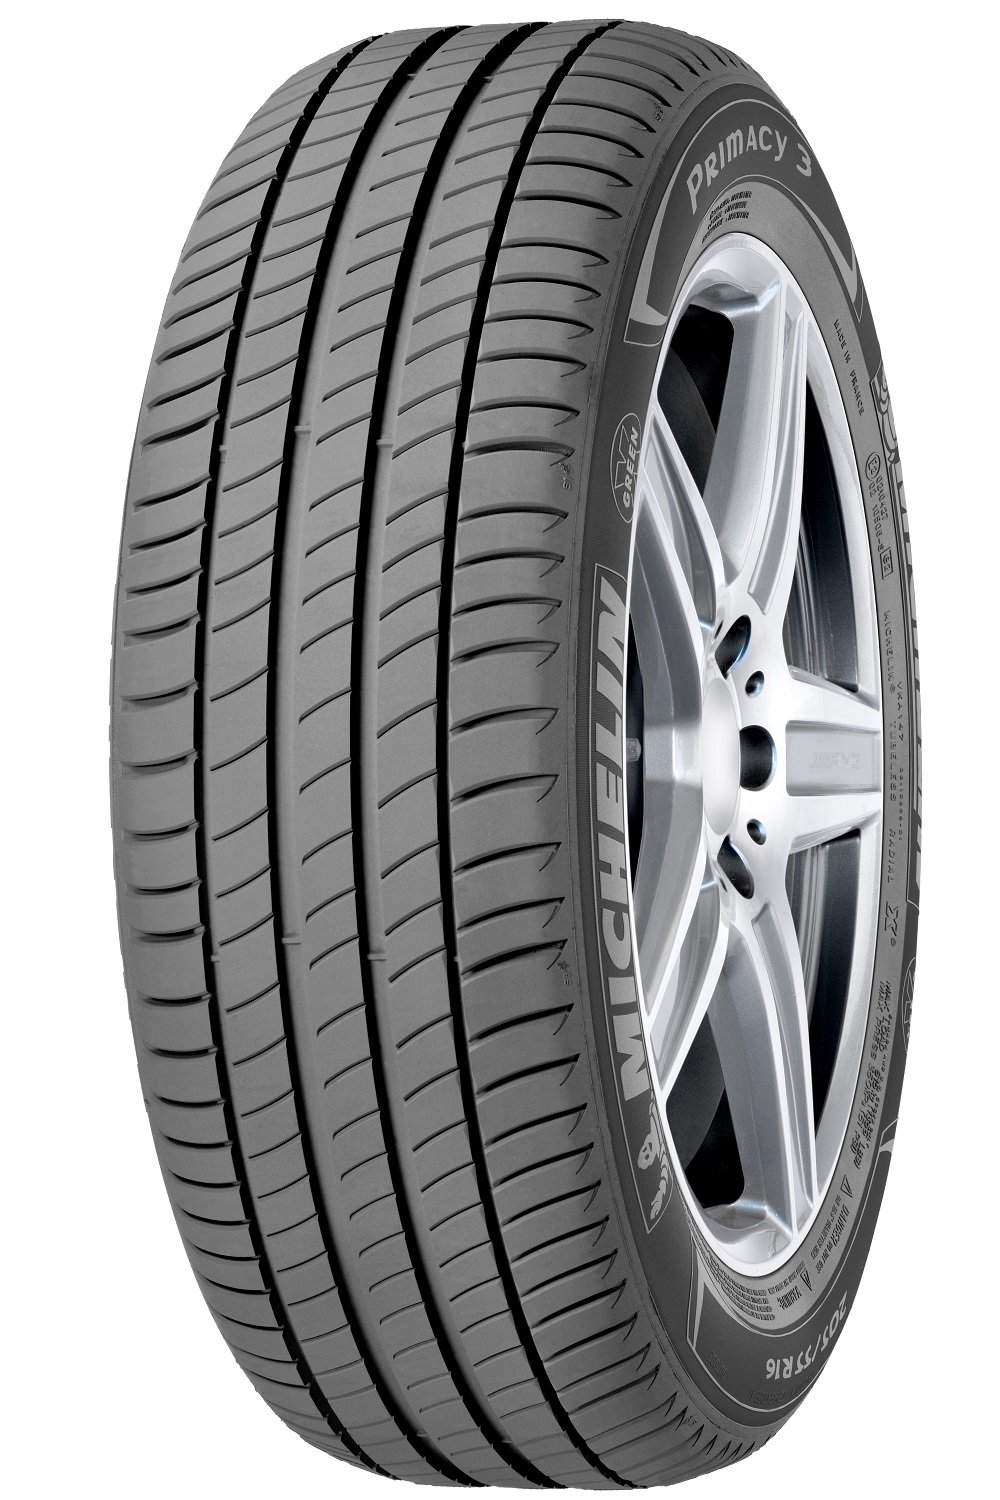 Pneu MICHELIN PRIMACY 3 215/55R16 97 V